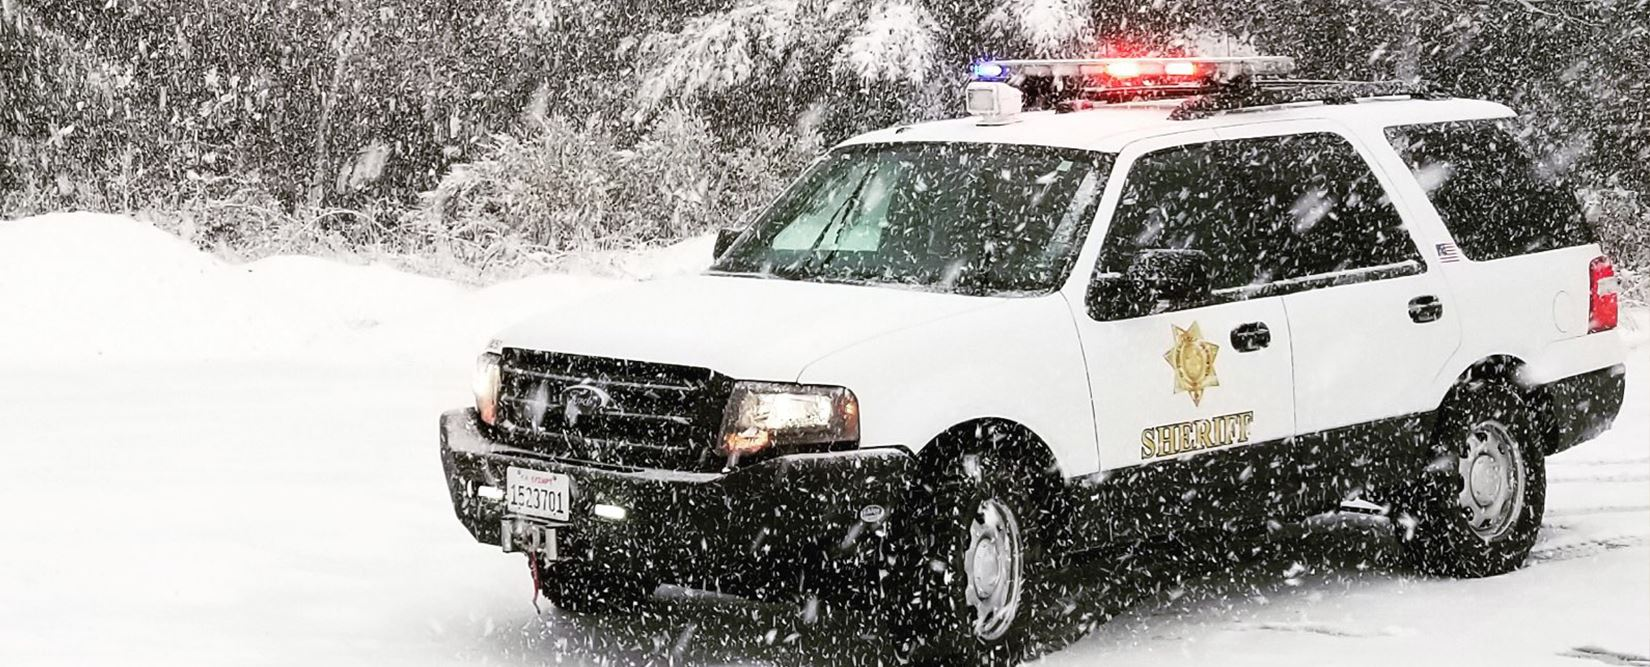 Patrol car in the snow at Berry Summit